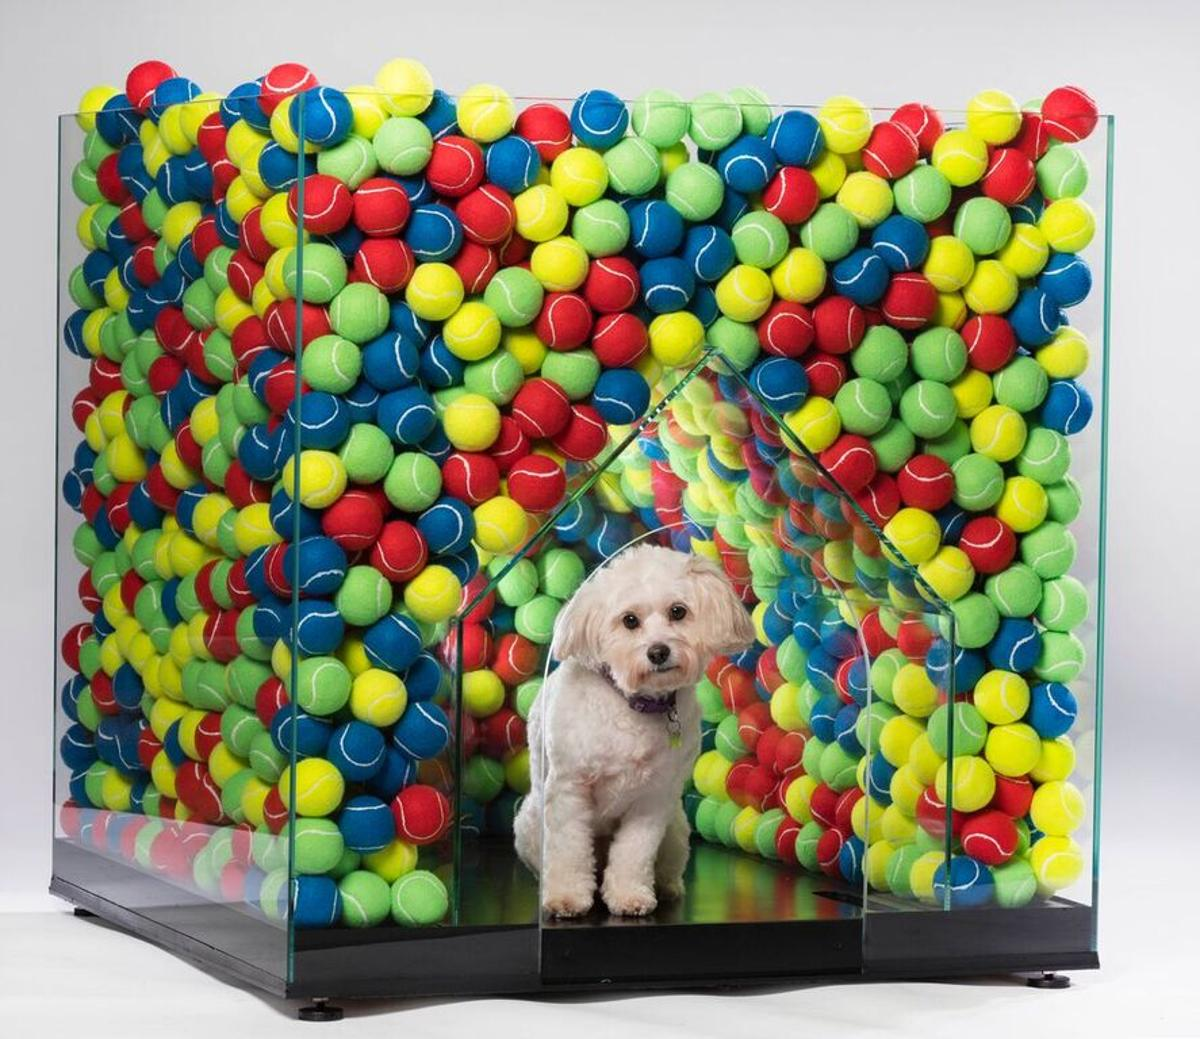 The DW Kennel was designed by Denizen works, Cantifix and Arrant Land. It holds 2,000 tennis balls to ensure the dog never runs out of balls to play with